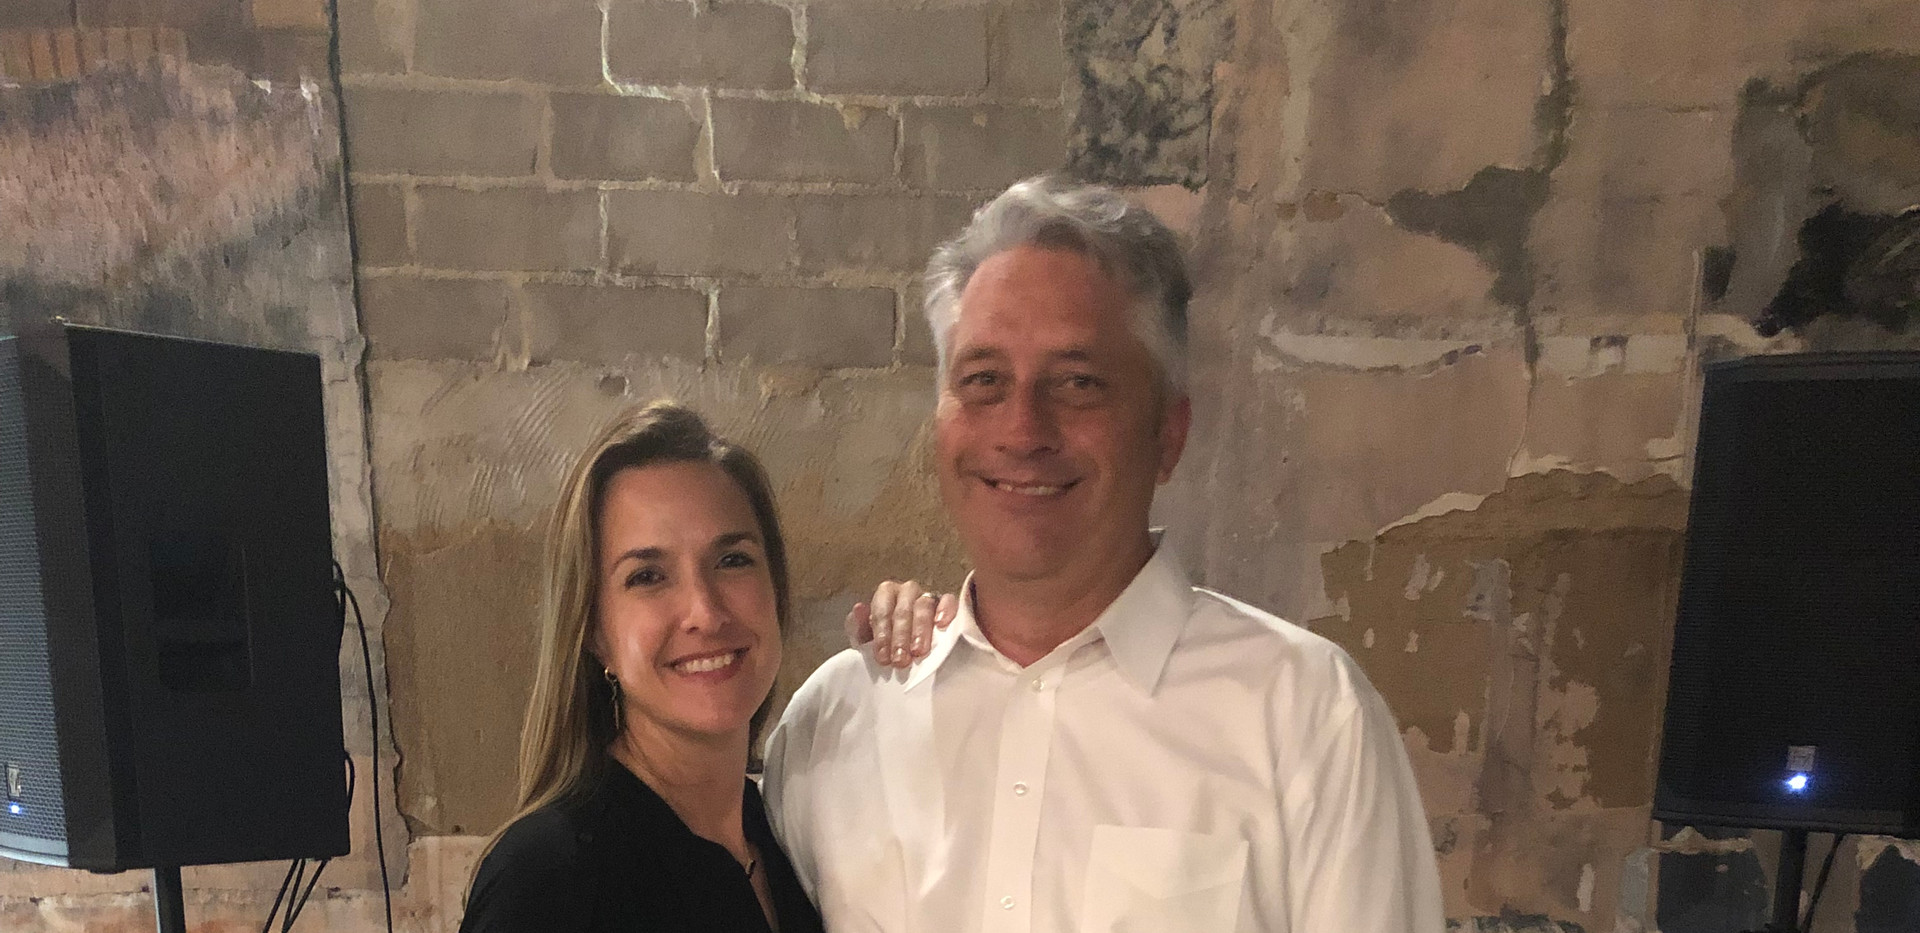 DJ Jerry and his wife, Christa